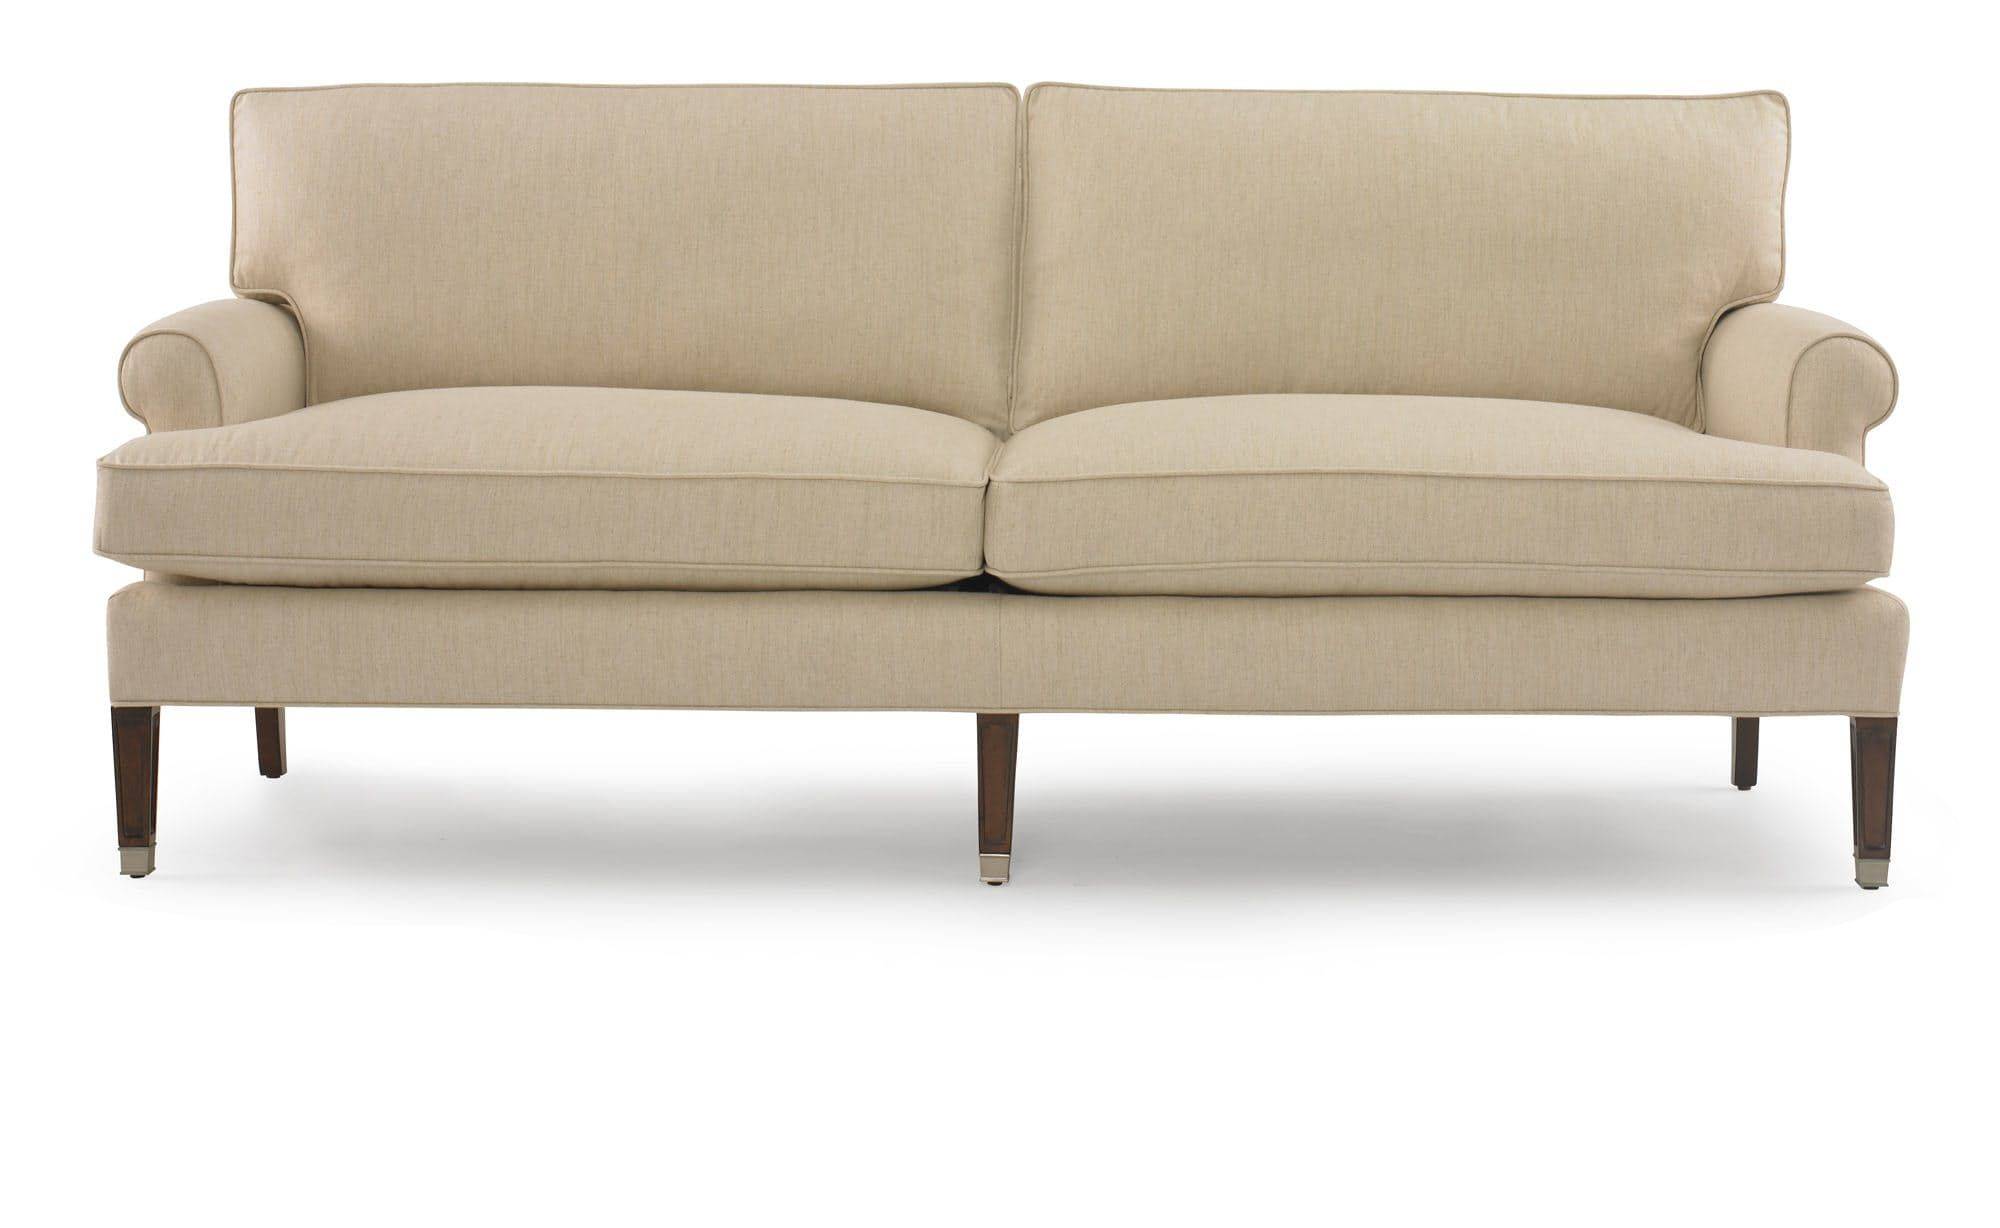 Lee Jofa Salisbury Sofa H3803 6